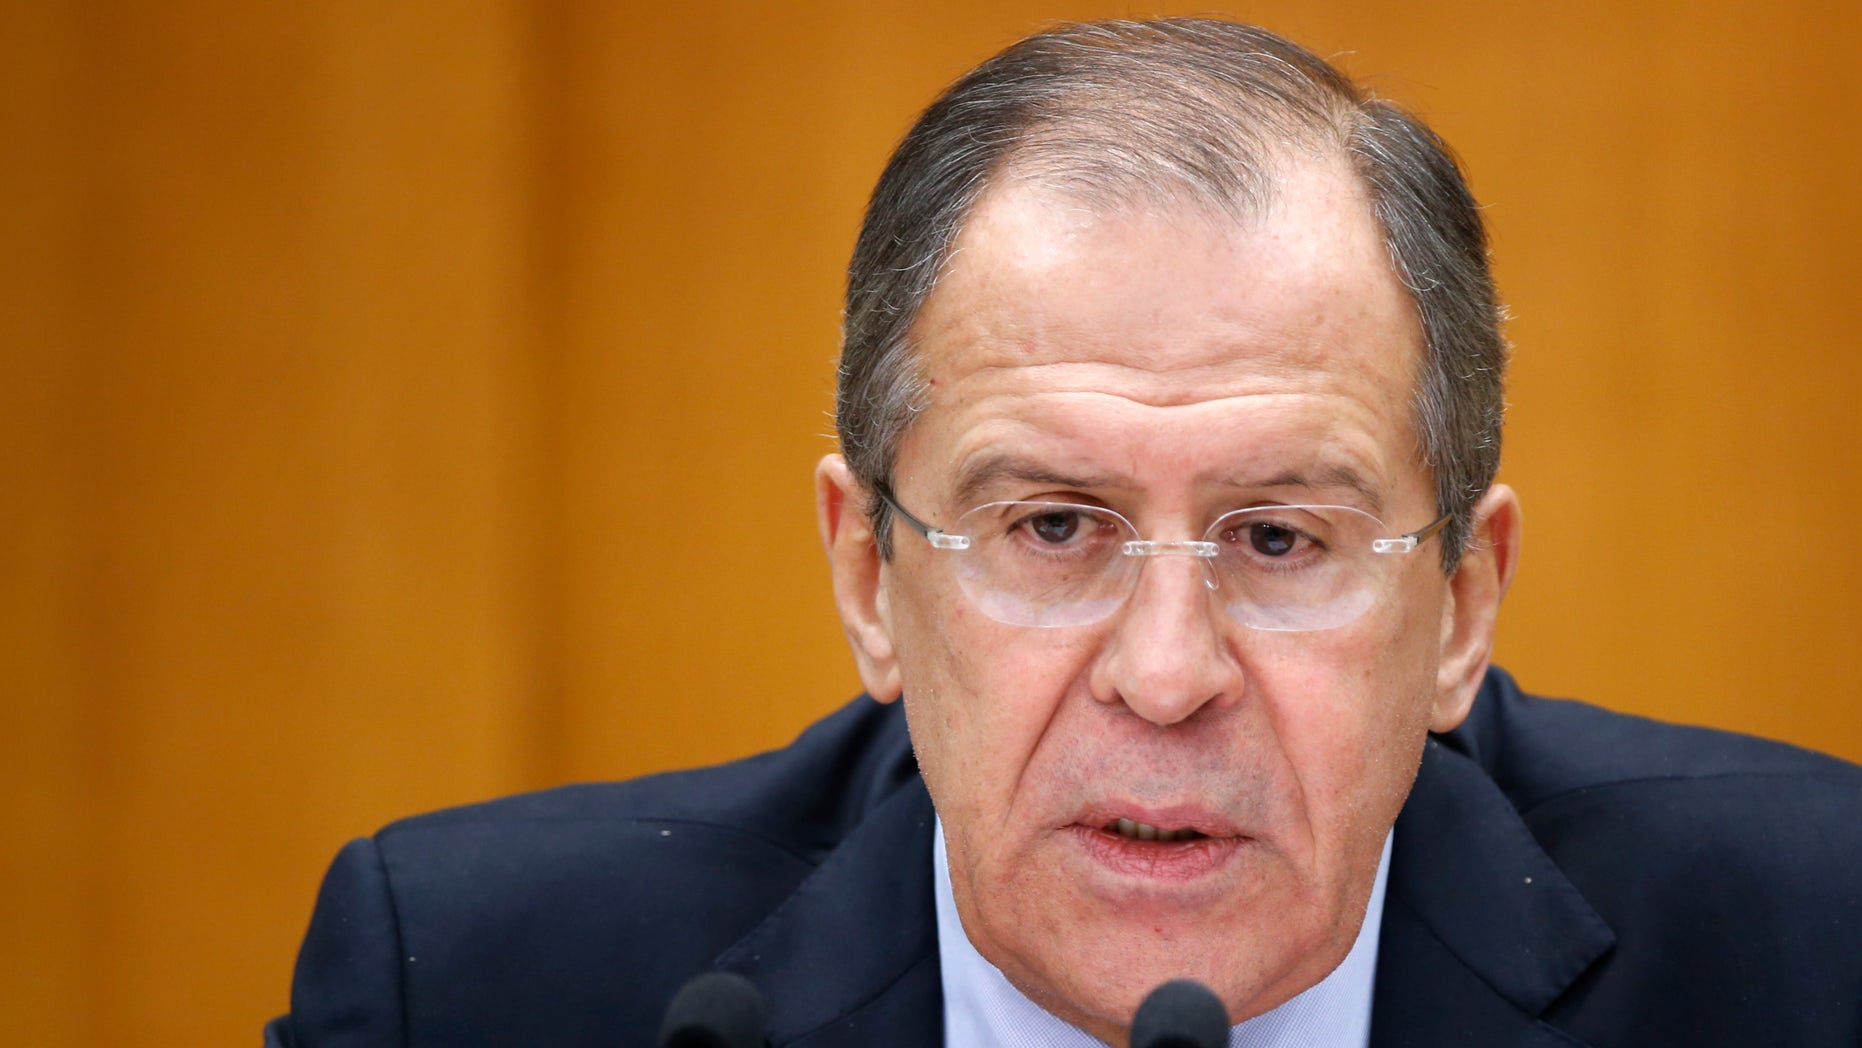 Jan. 23, 2013 - Russian Foreign Minister Sergey Lavrov during his news conference in Moscow, Russia.